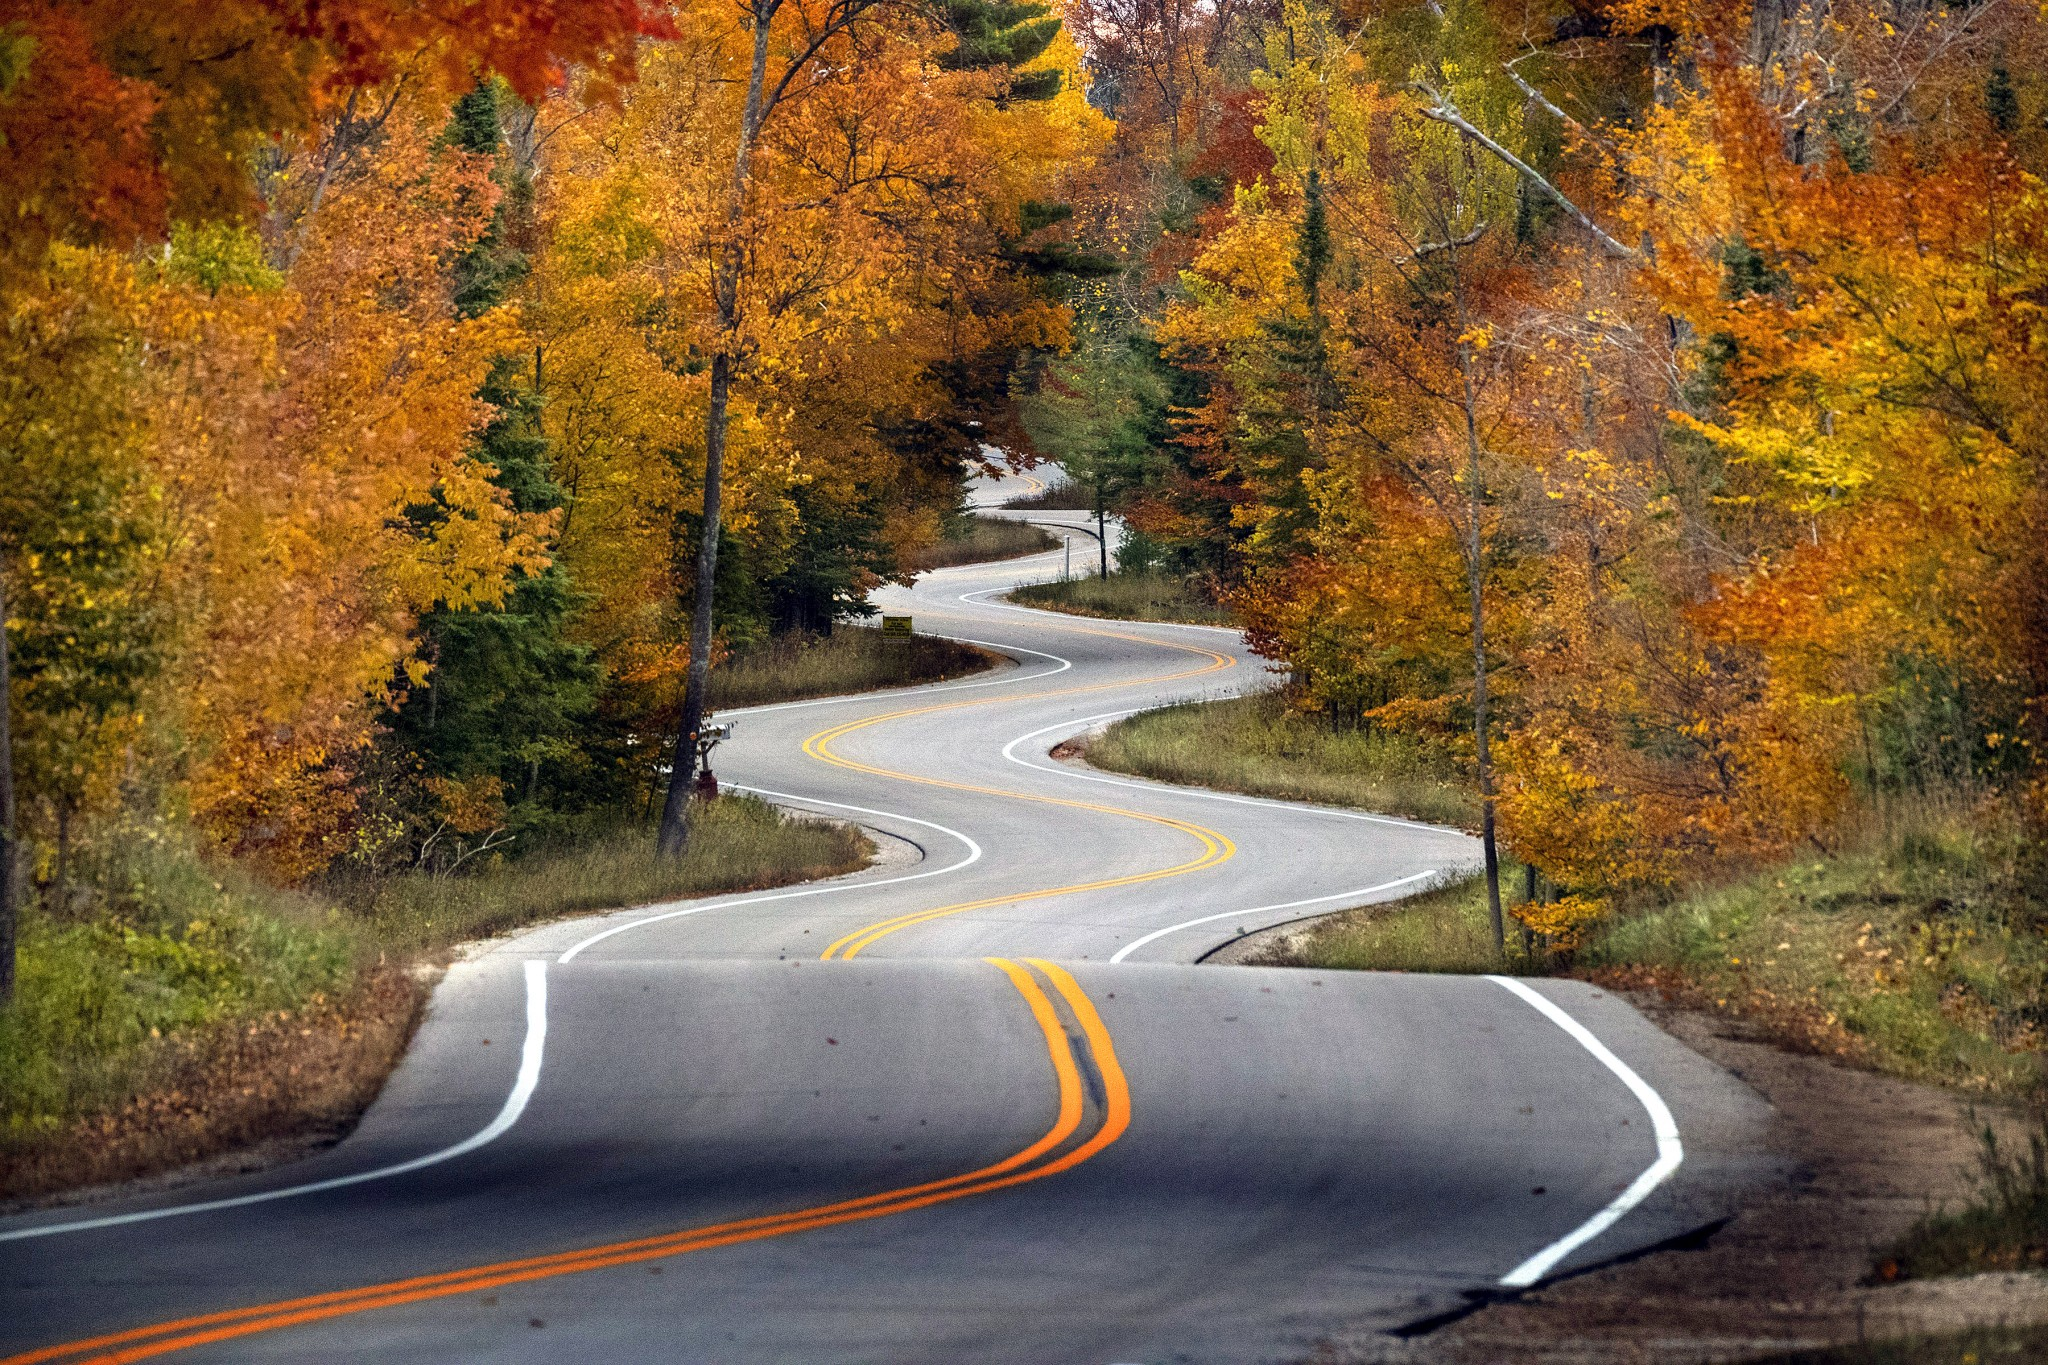 """The winding road across the northern tip of Door County is one big reason that area is frequently named one of the best fall color drives in the nation. The """"Windy Road,"""" as it's commonly called, was designed to make people slow down and enjoy the scenery. It works. Drivers frequently have to slow down even more for photographers. (Photo by Art Weber)"""